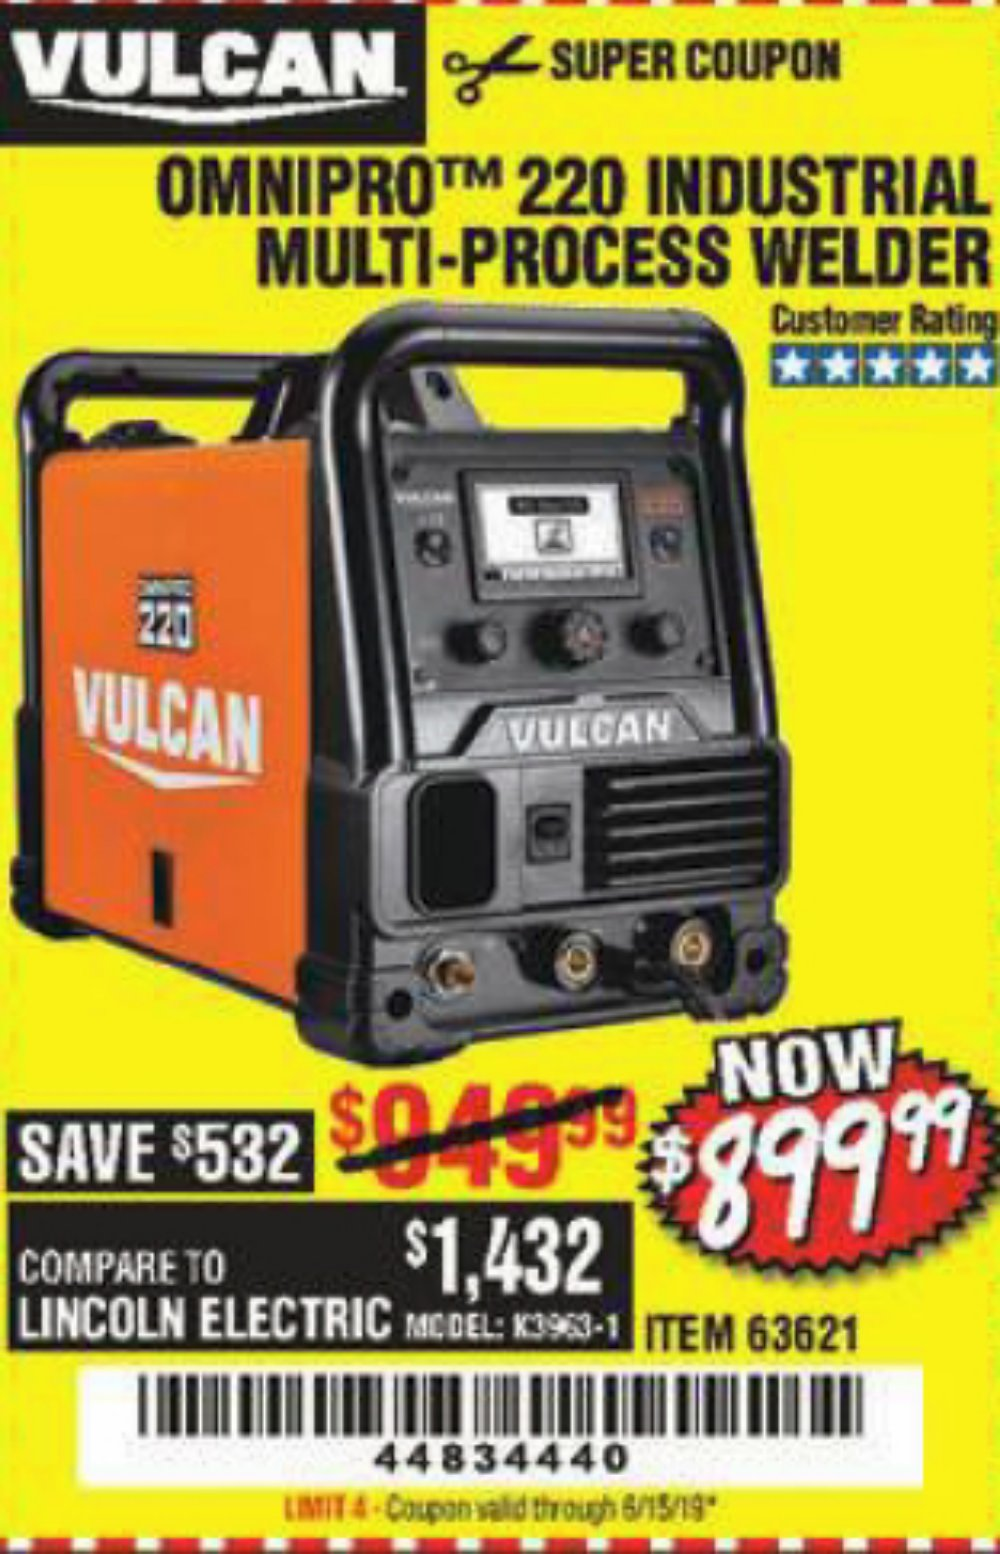 Harbor Freight Coupon, HF Coupons - Vulcan Omnipro 220 Multiprocess Welder With 120/240 Volt Input